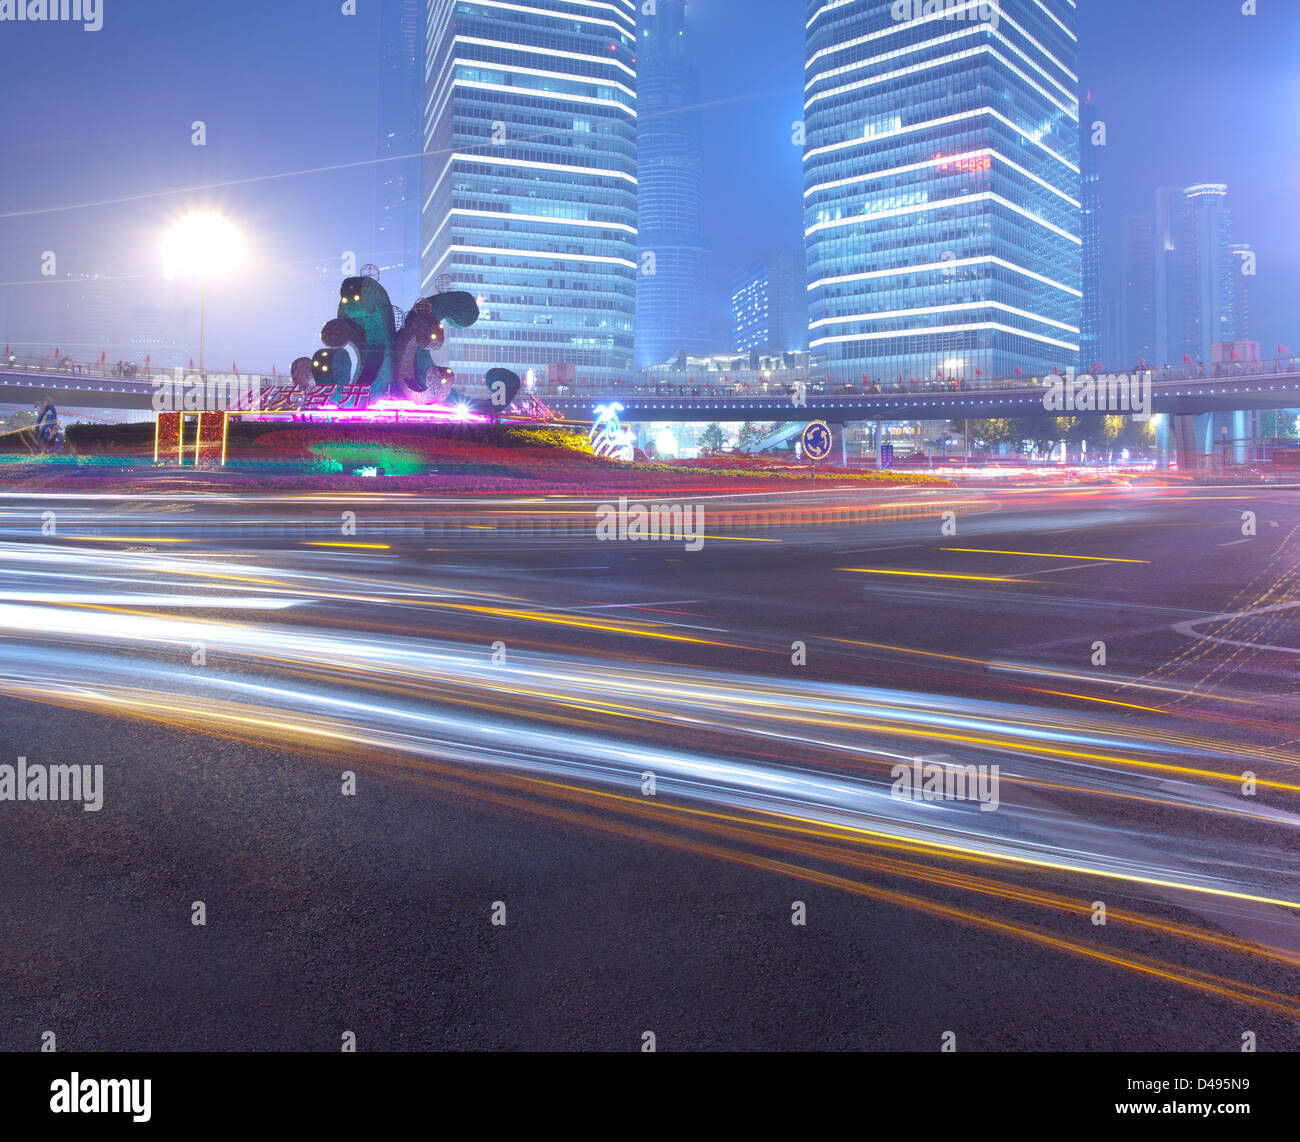 Background image rails - Stock Photo Car Lamp Light Rails With Modern Building Background In A Holiday Season